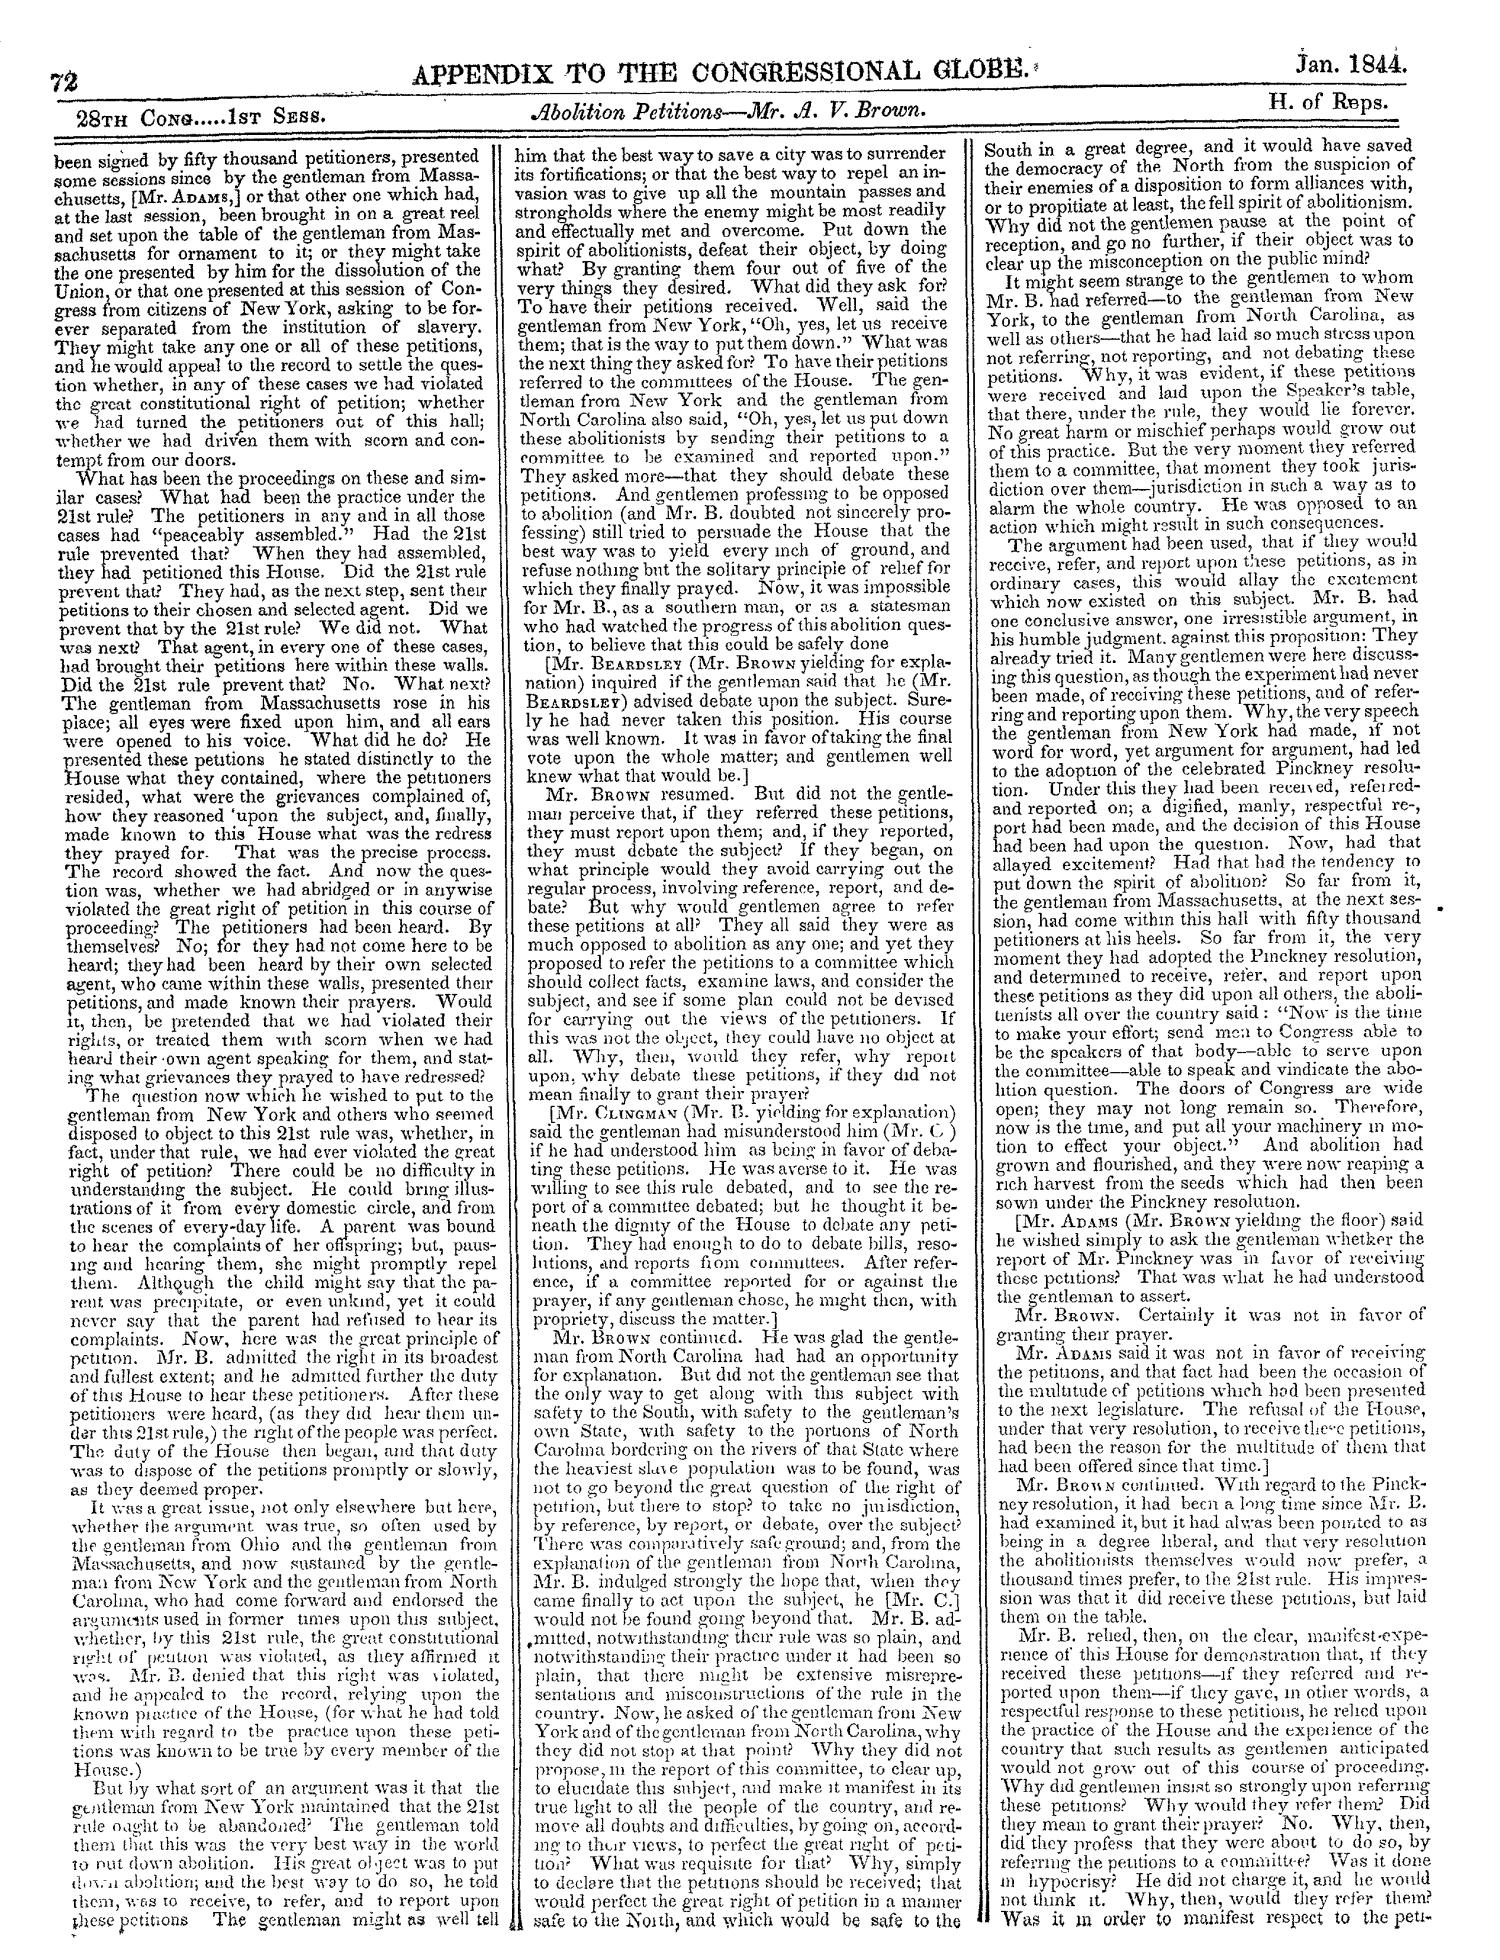 The Congressional Globe, Volume 13, Part 2: Twenty-Eighth Congress, First Session                                                                                                      72